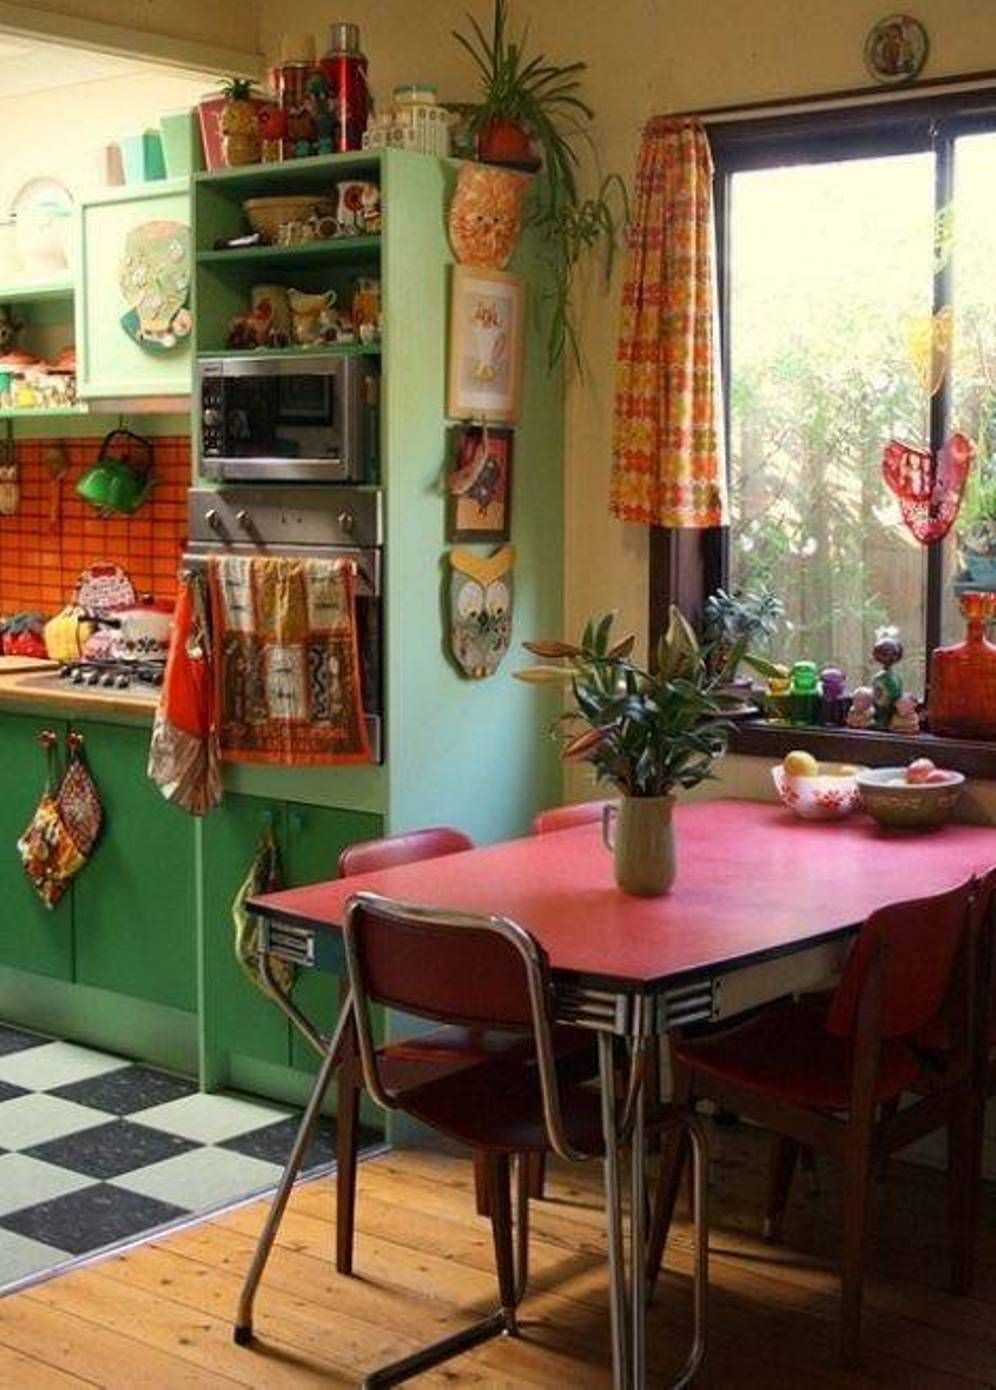 Home Decor Interior Design: Vintage Home Interior Pictures